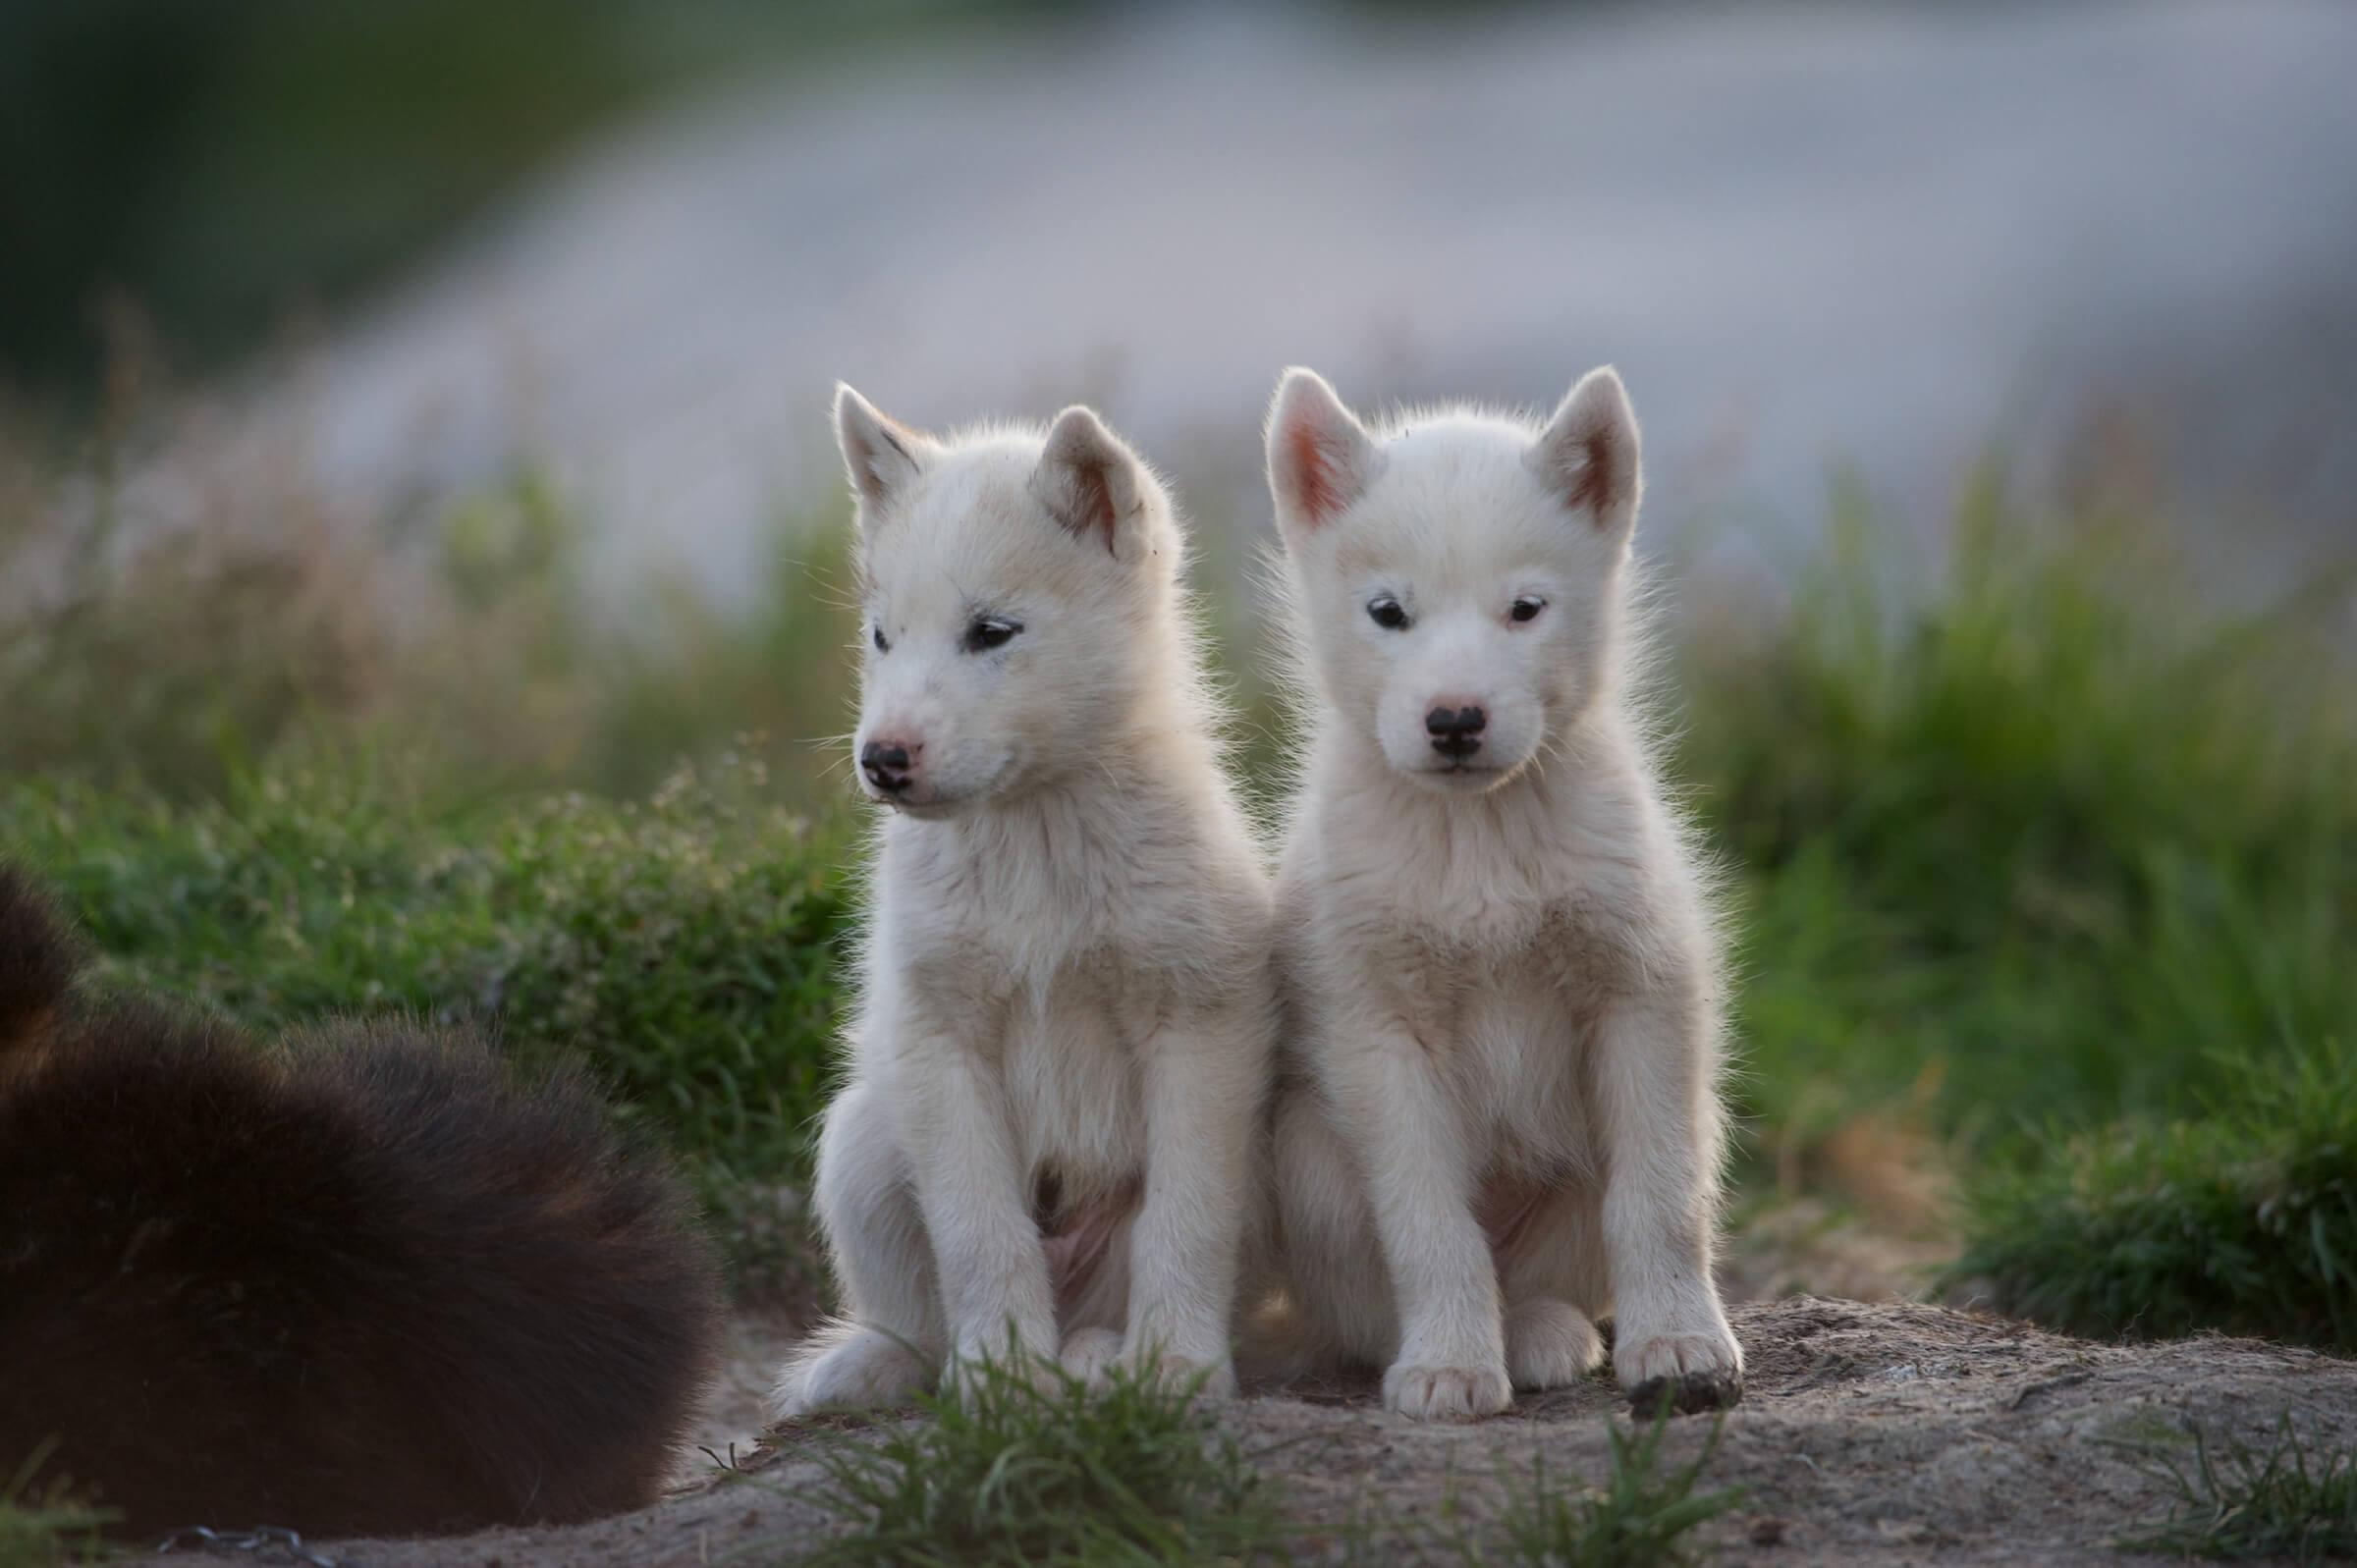 Two sled dog puppies in summer. Photo by David Buchmann.